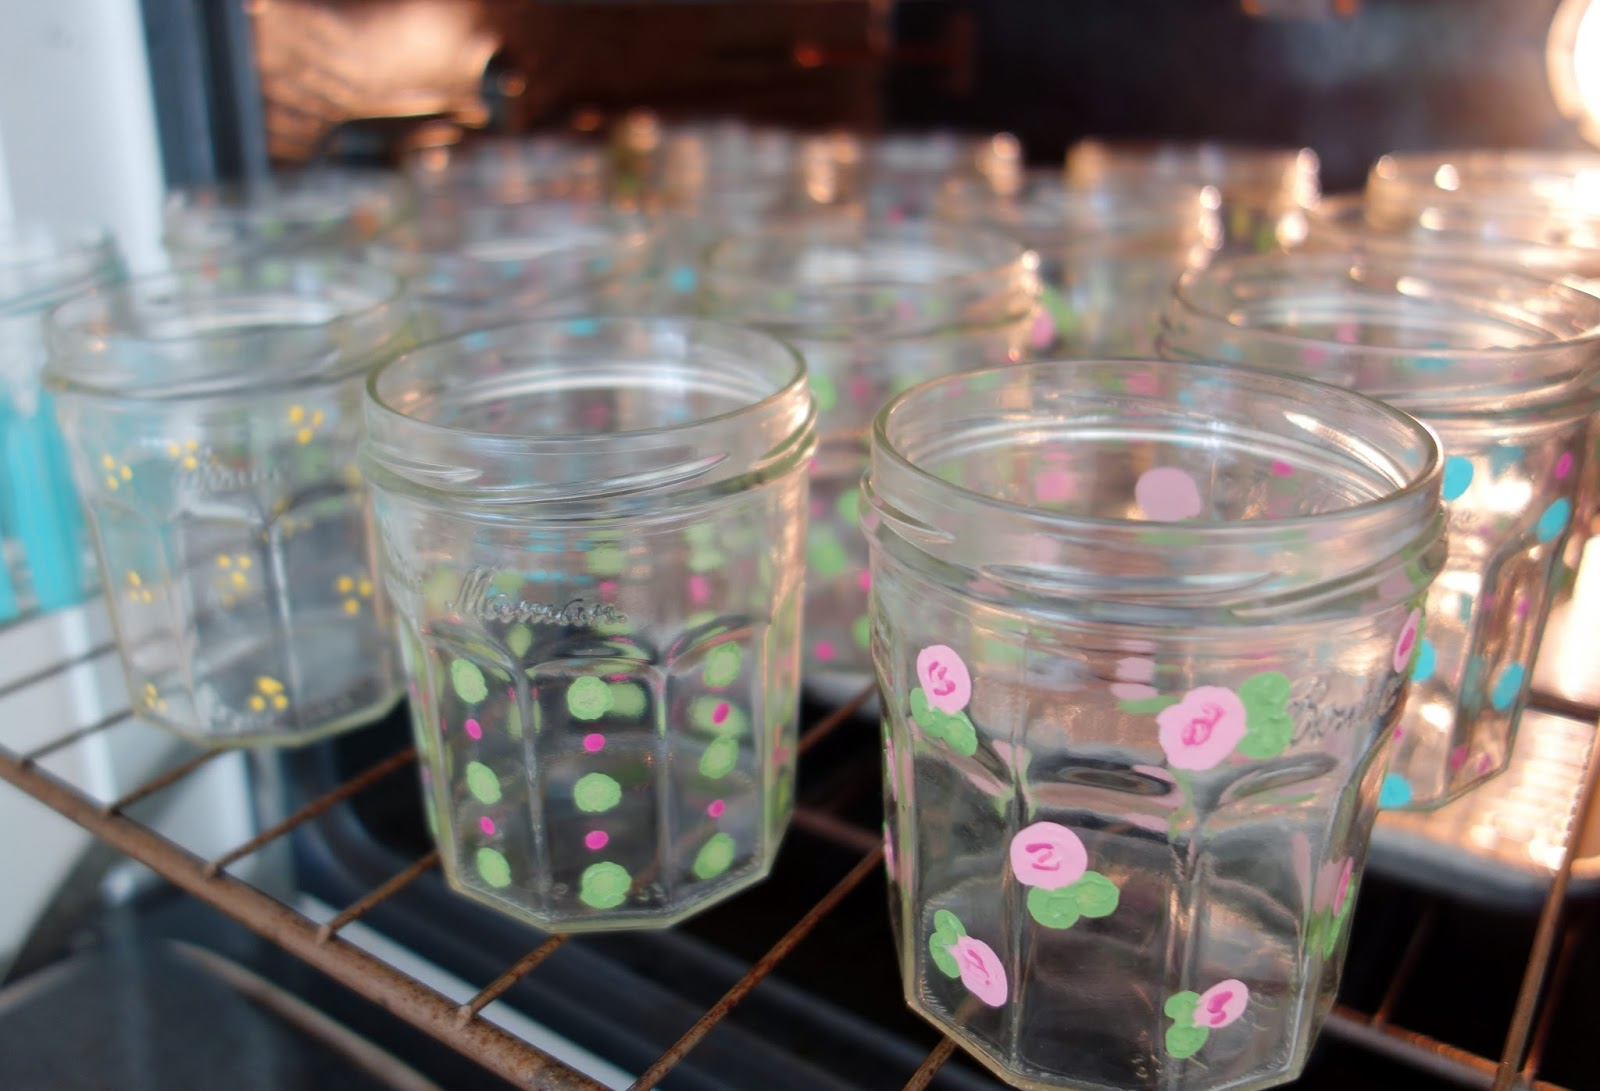 Moments Of Delight Anne Reeves Painting Jam Jars Yoga For My Inner Crafter